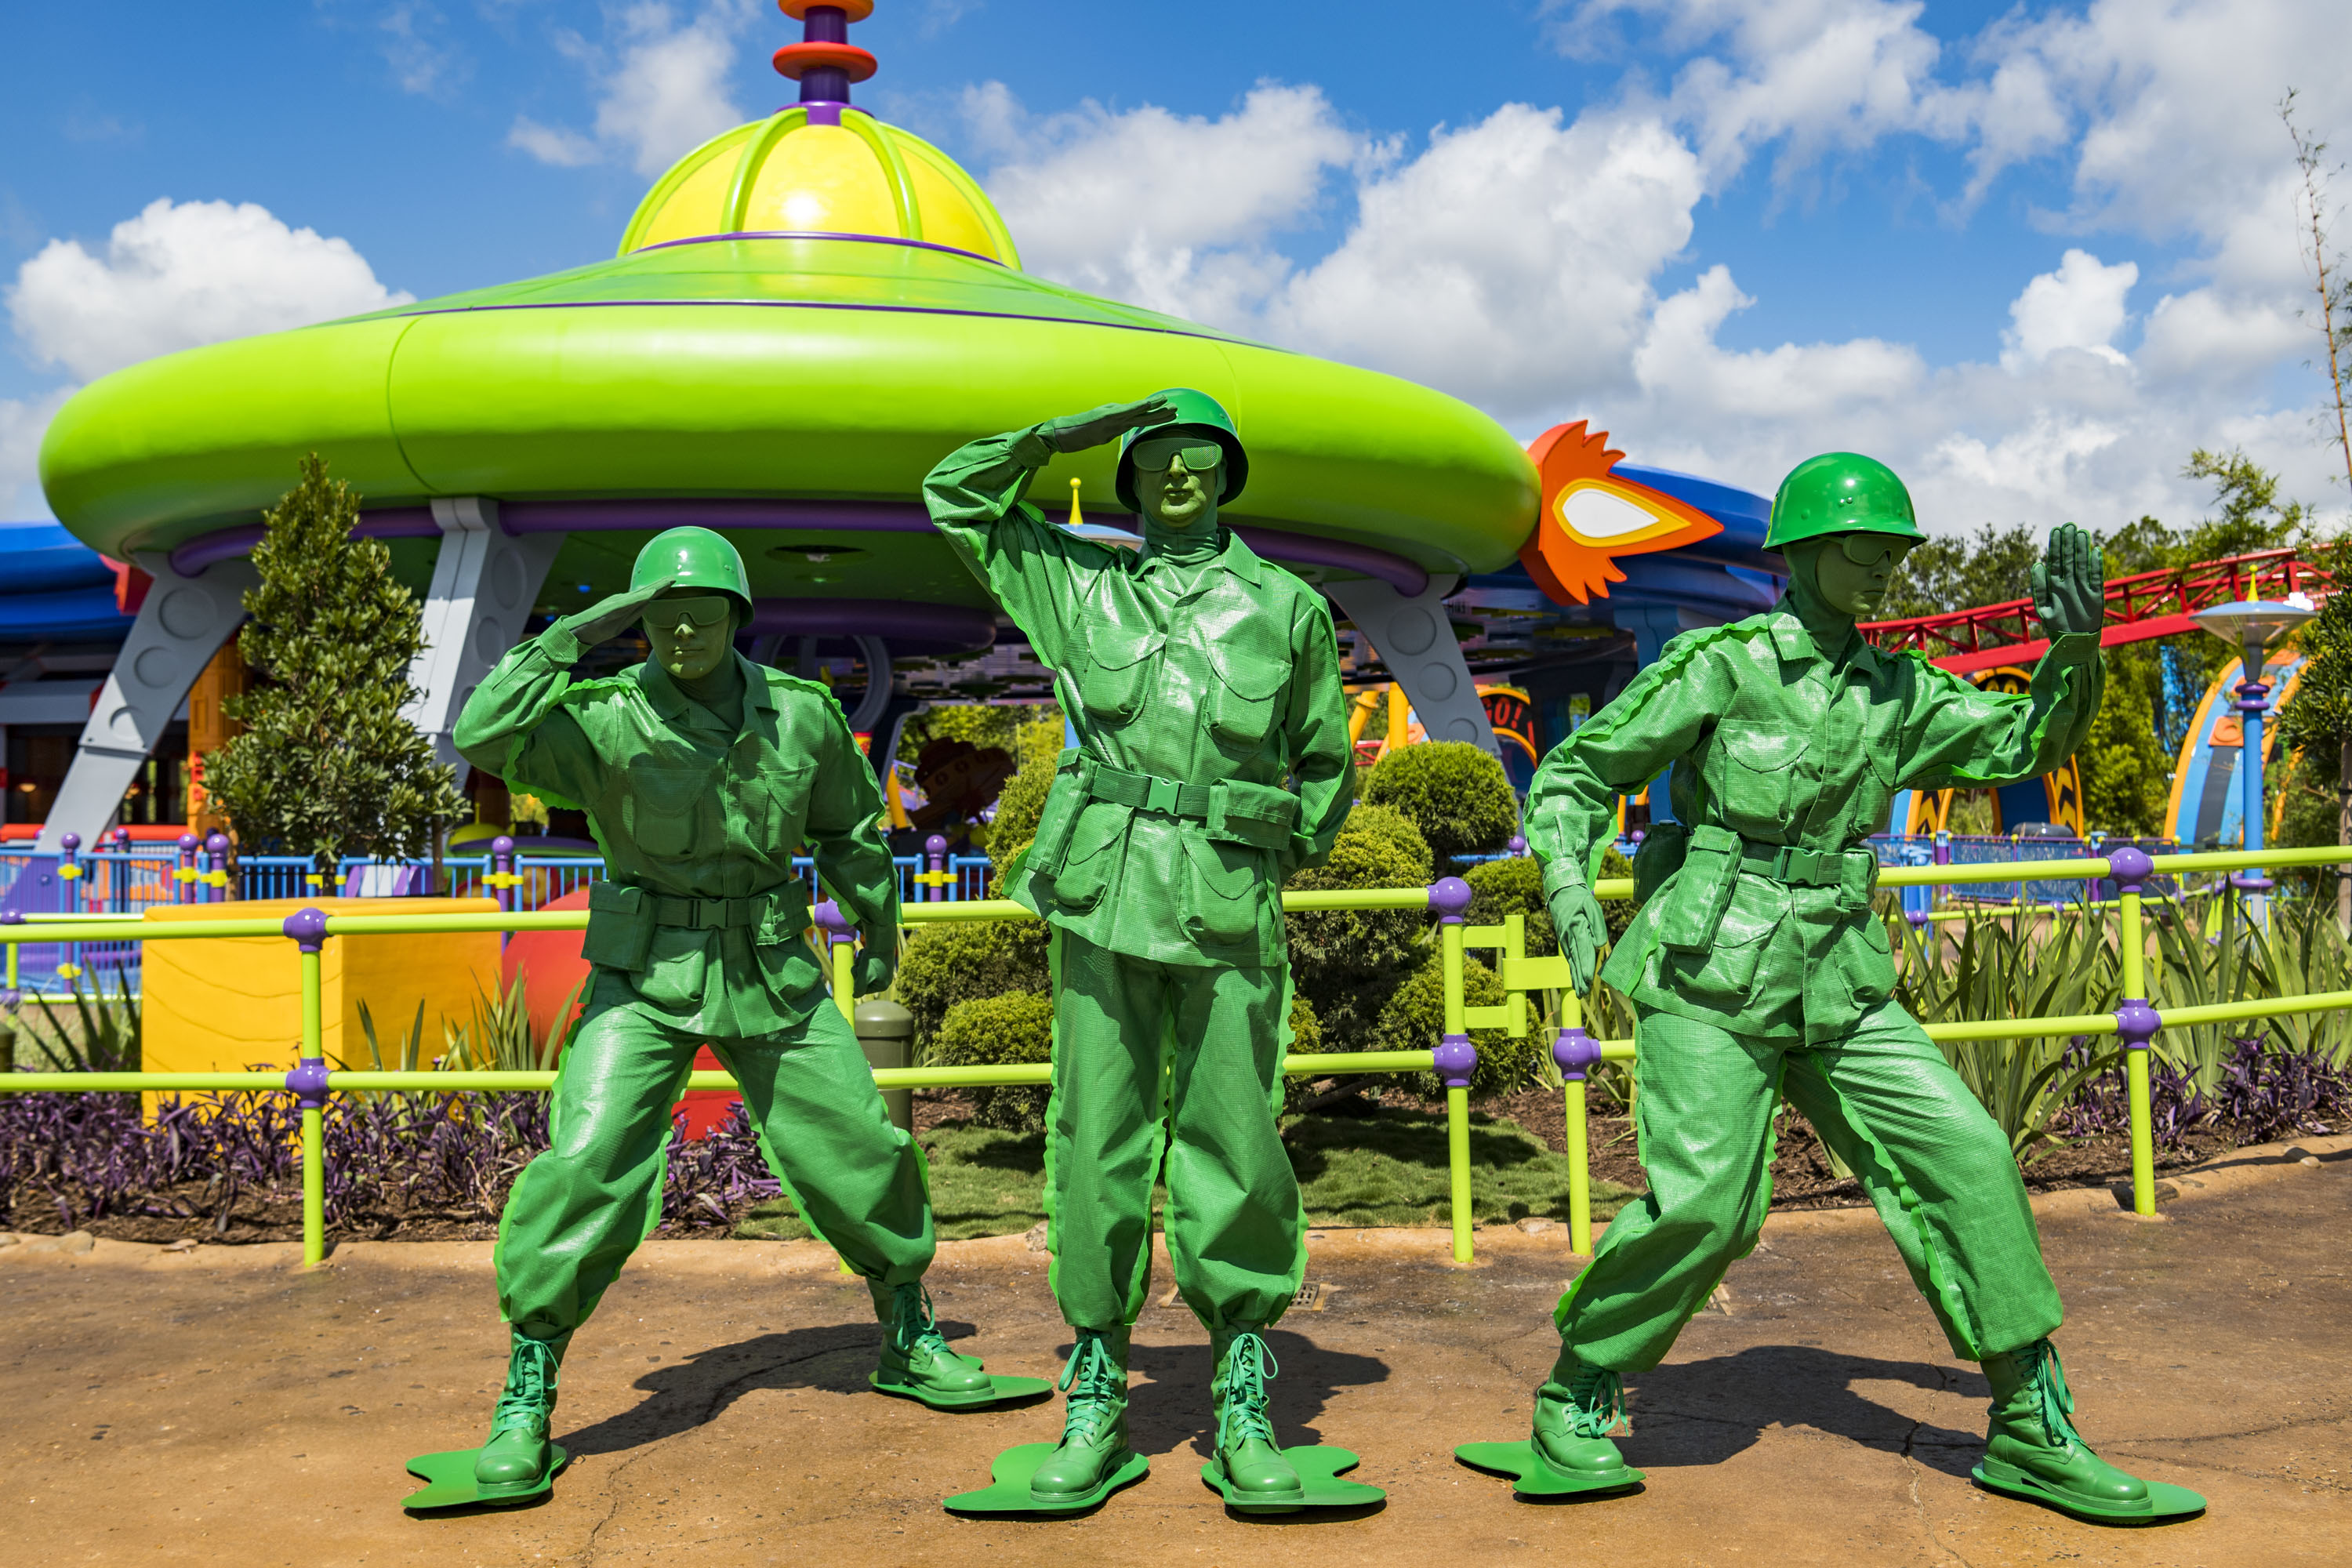 Green Army Men await guests who visit Toy Story Land at DisneyÕs Hollywood Studios. They march through the land several times a day and stop to play ÒSarge SaysÓ with guests, plus other games. The 11-acre land transports Walt Disney World guests into the adventurous outdoors of AndyÕs backyard, where they will feel like they are the size of a toy. (Matt Stroshane, photographer)